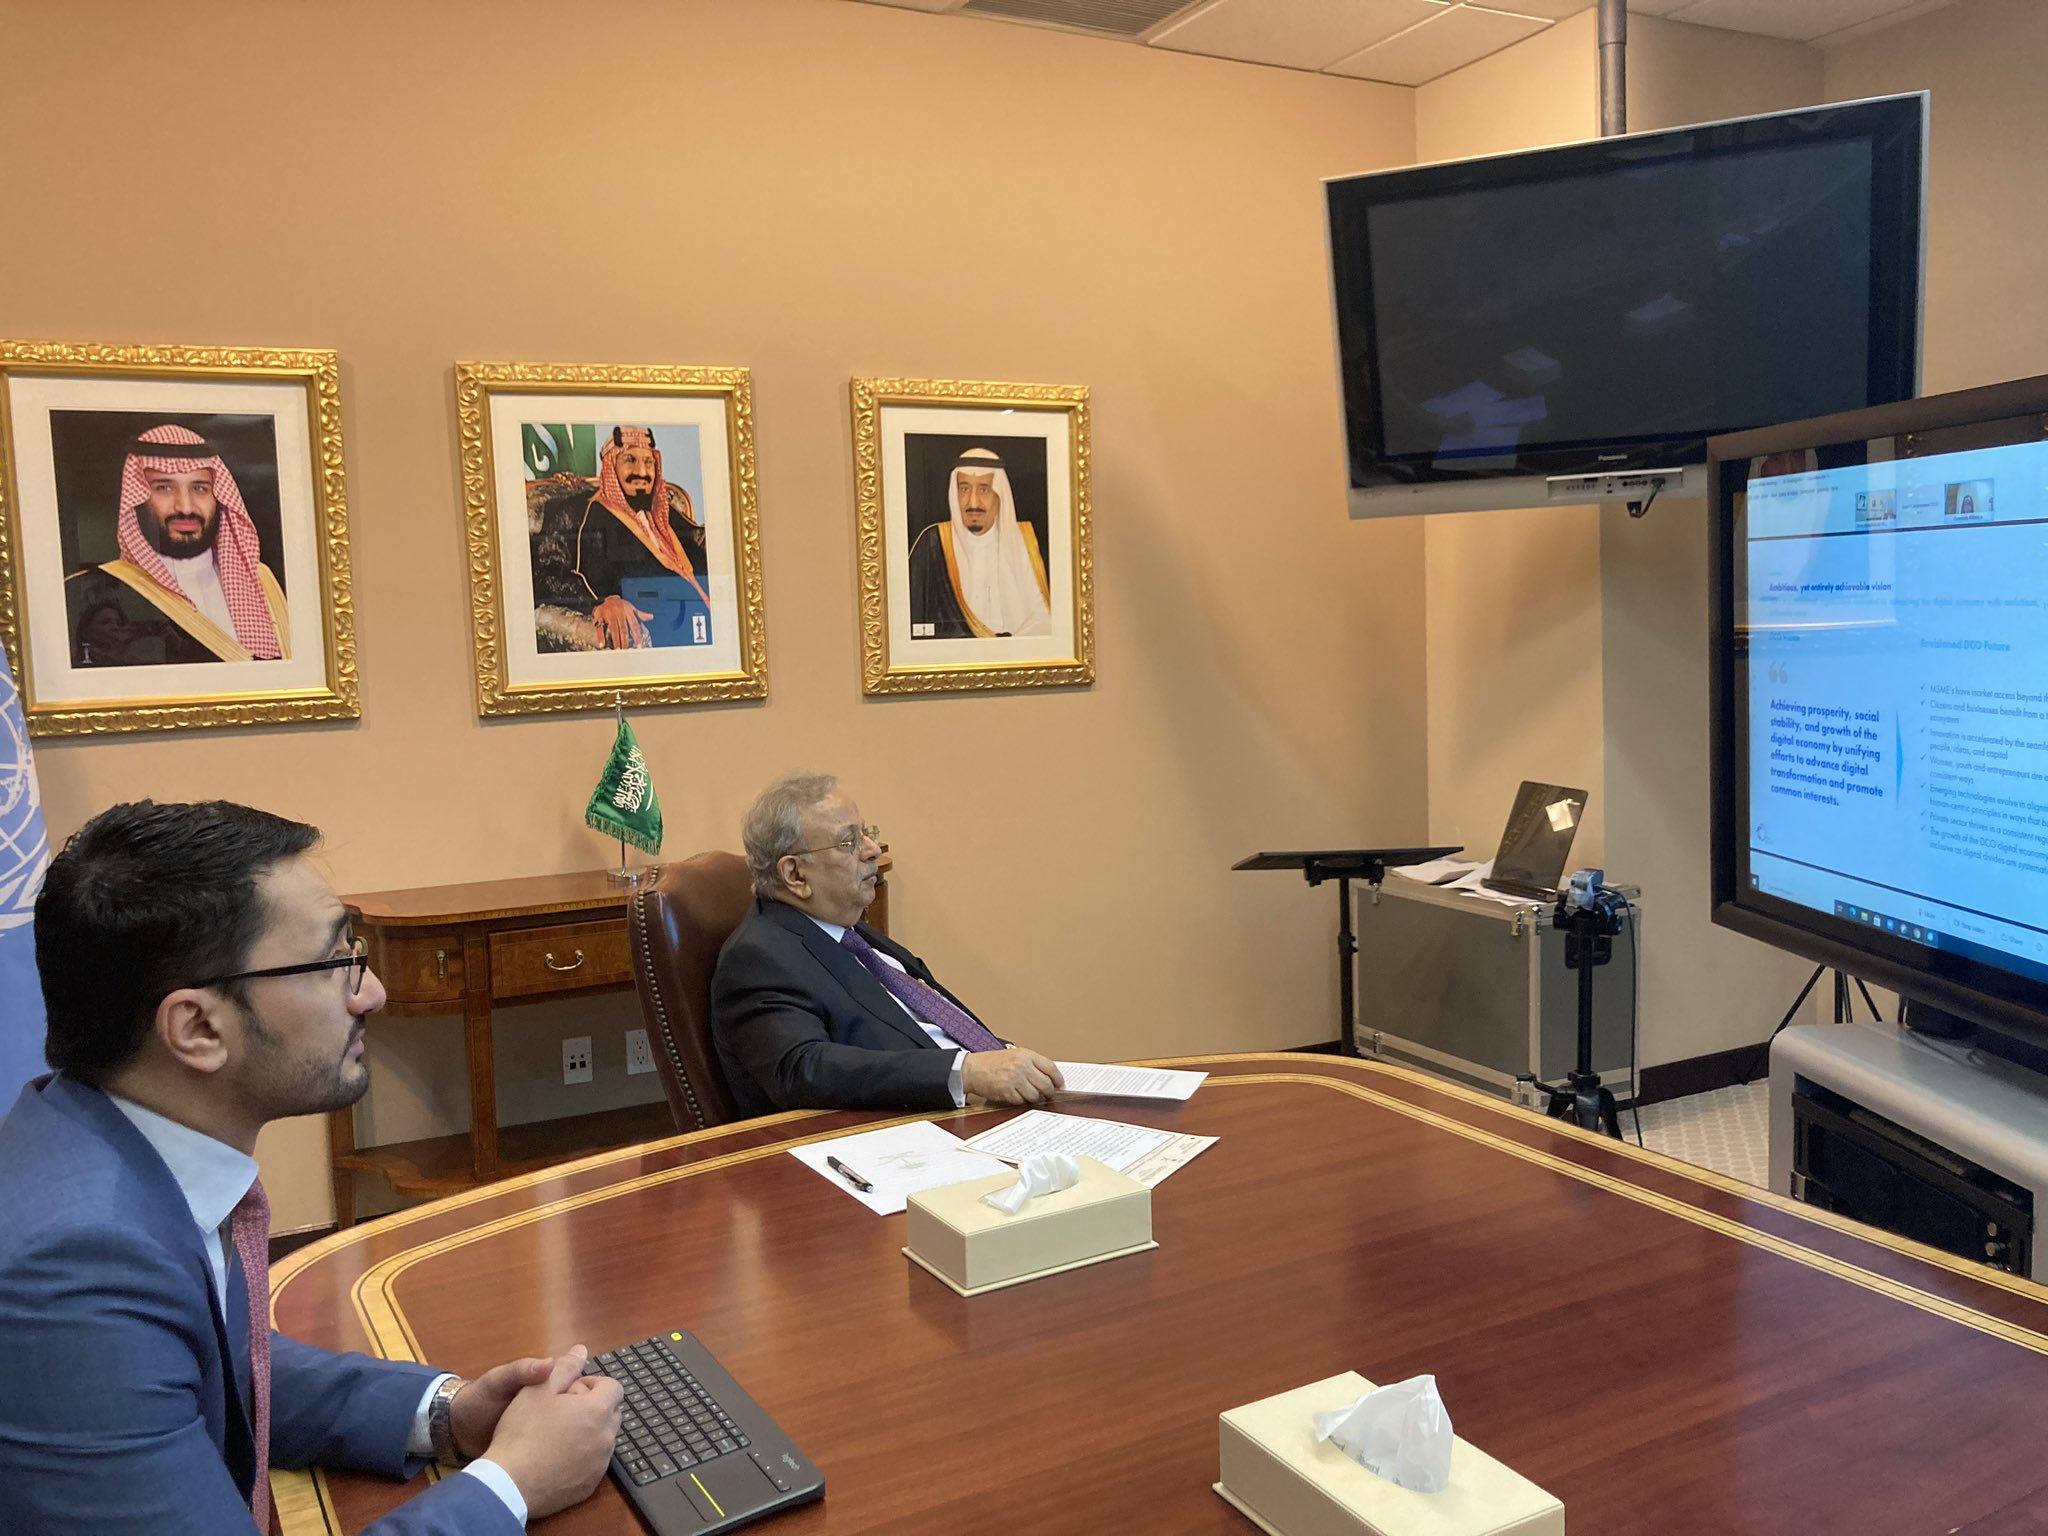 Saudi Arabia's ambassador to the UN, Abdallah Al-Mouallimi chaired a virtual meeting on Myanmar. (File/Twitter/@ksamissionun)